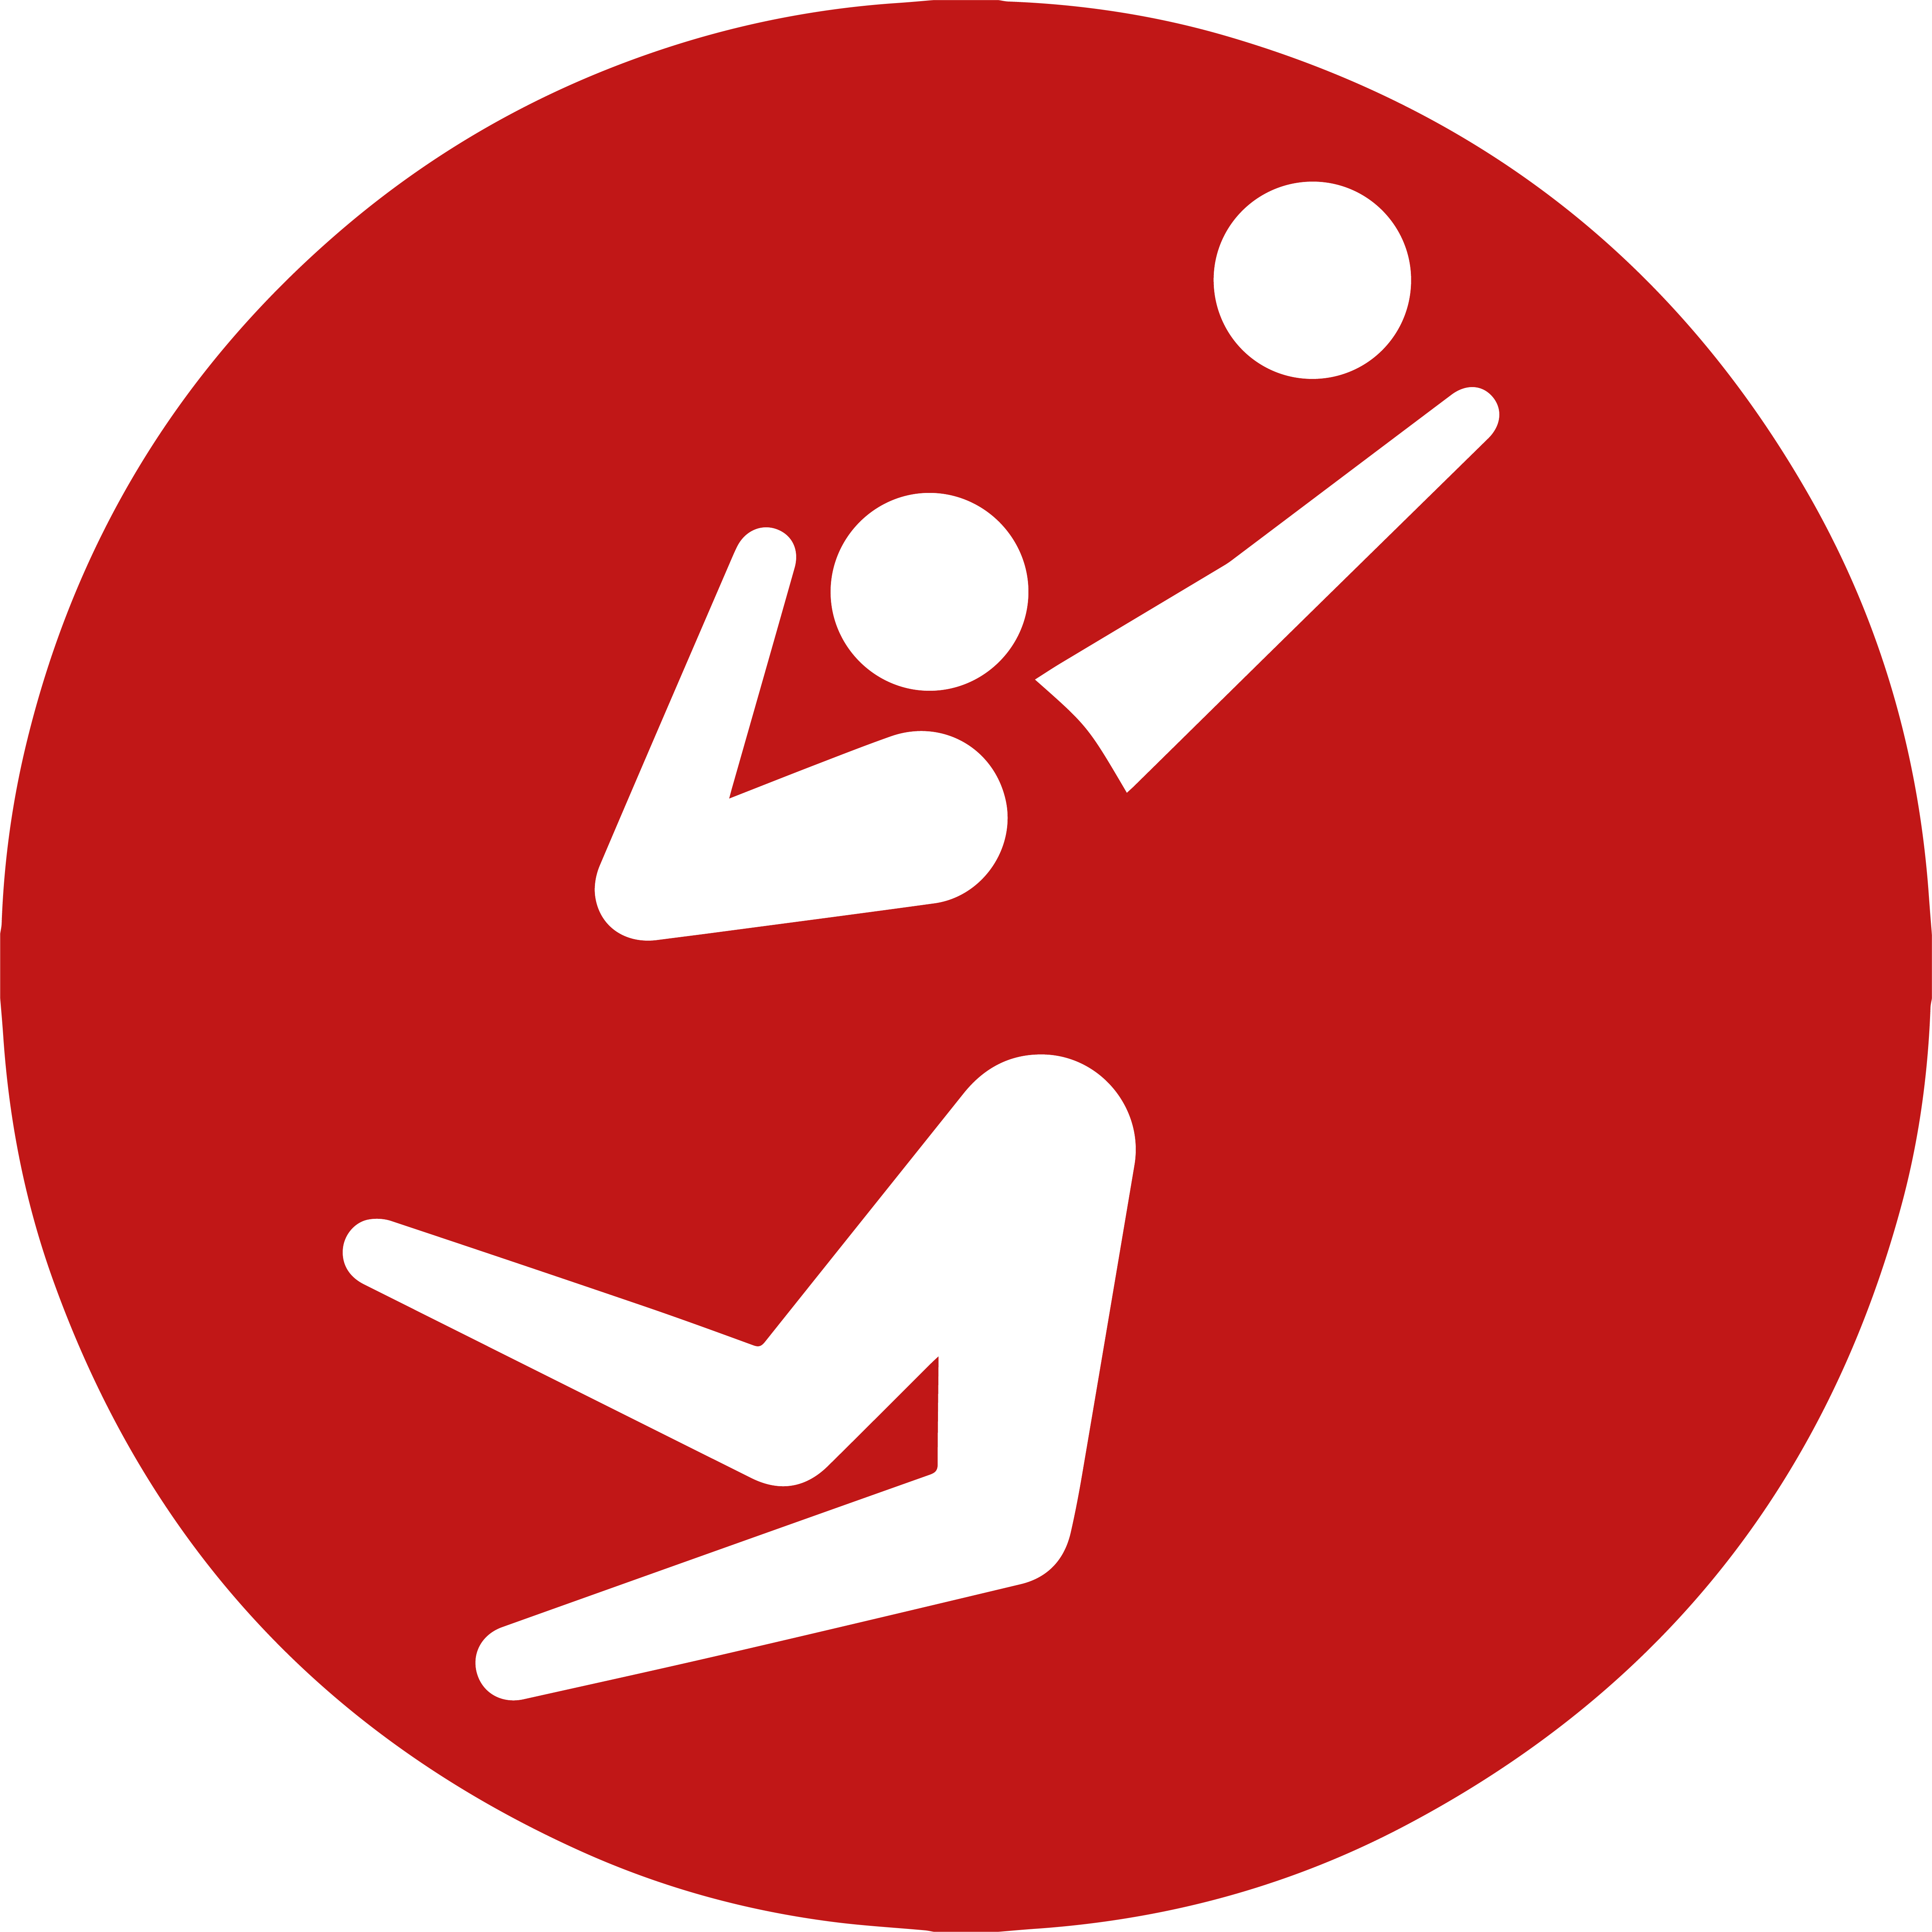 Volleyball Player Placeholder